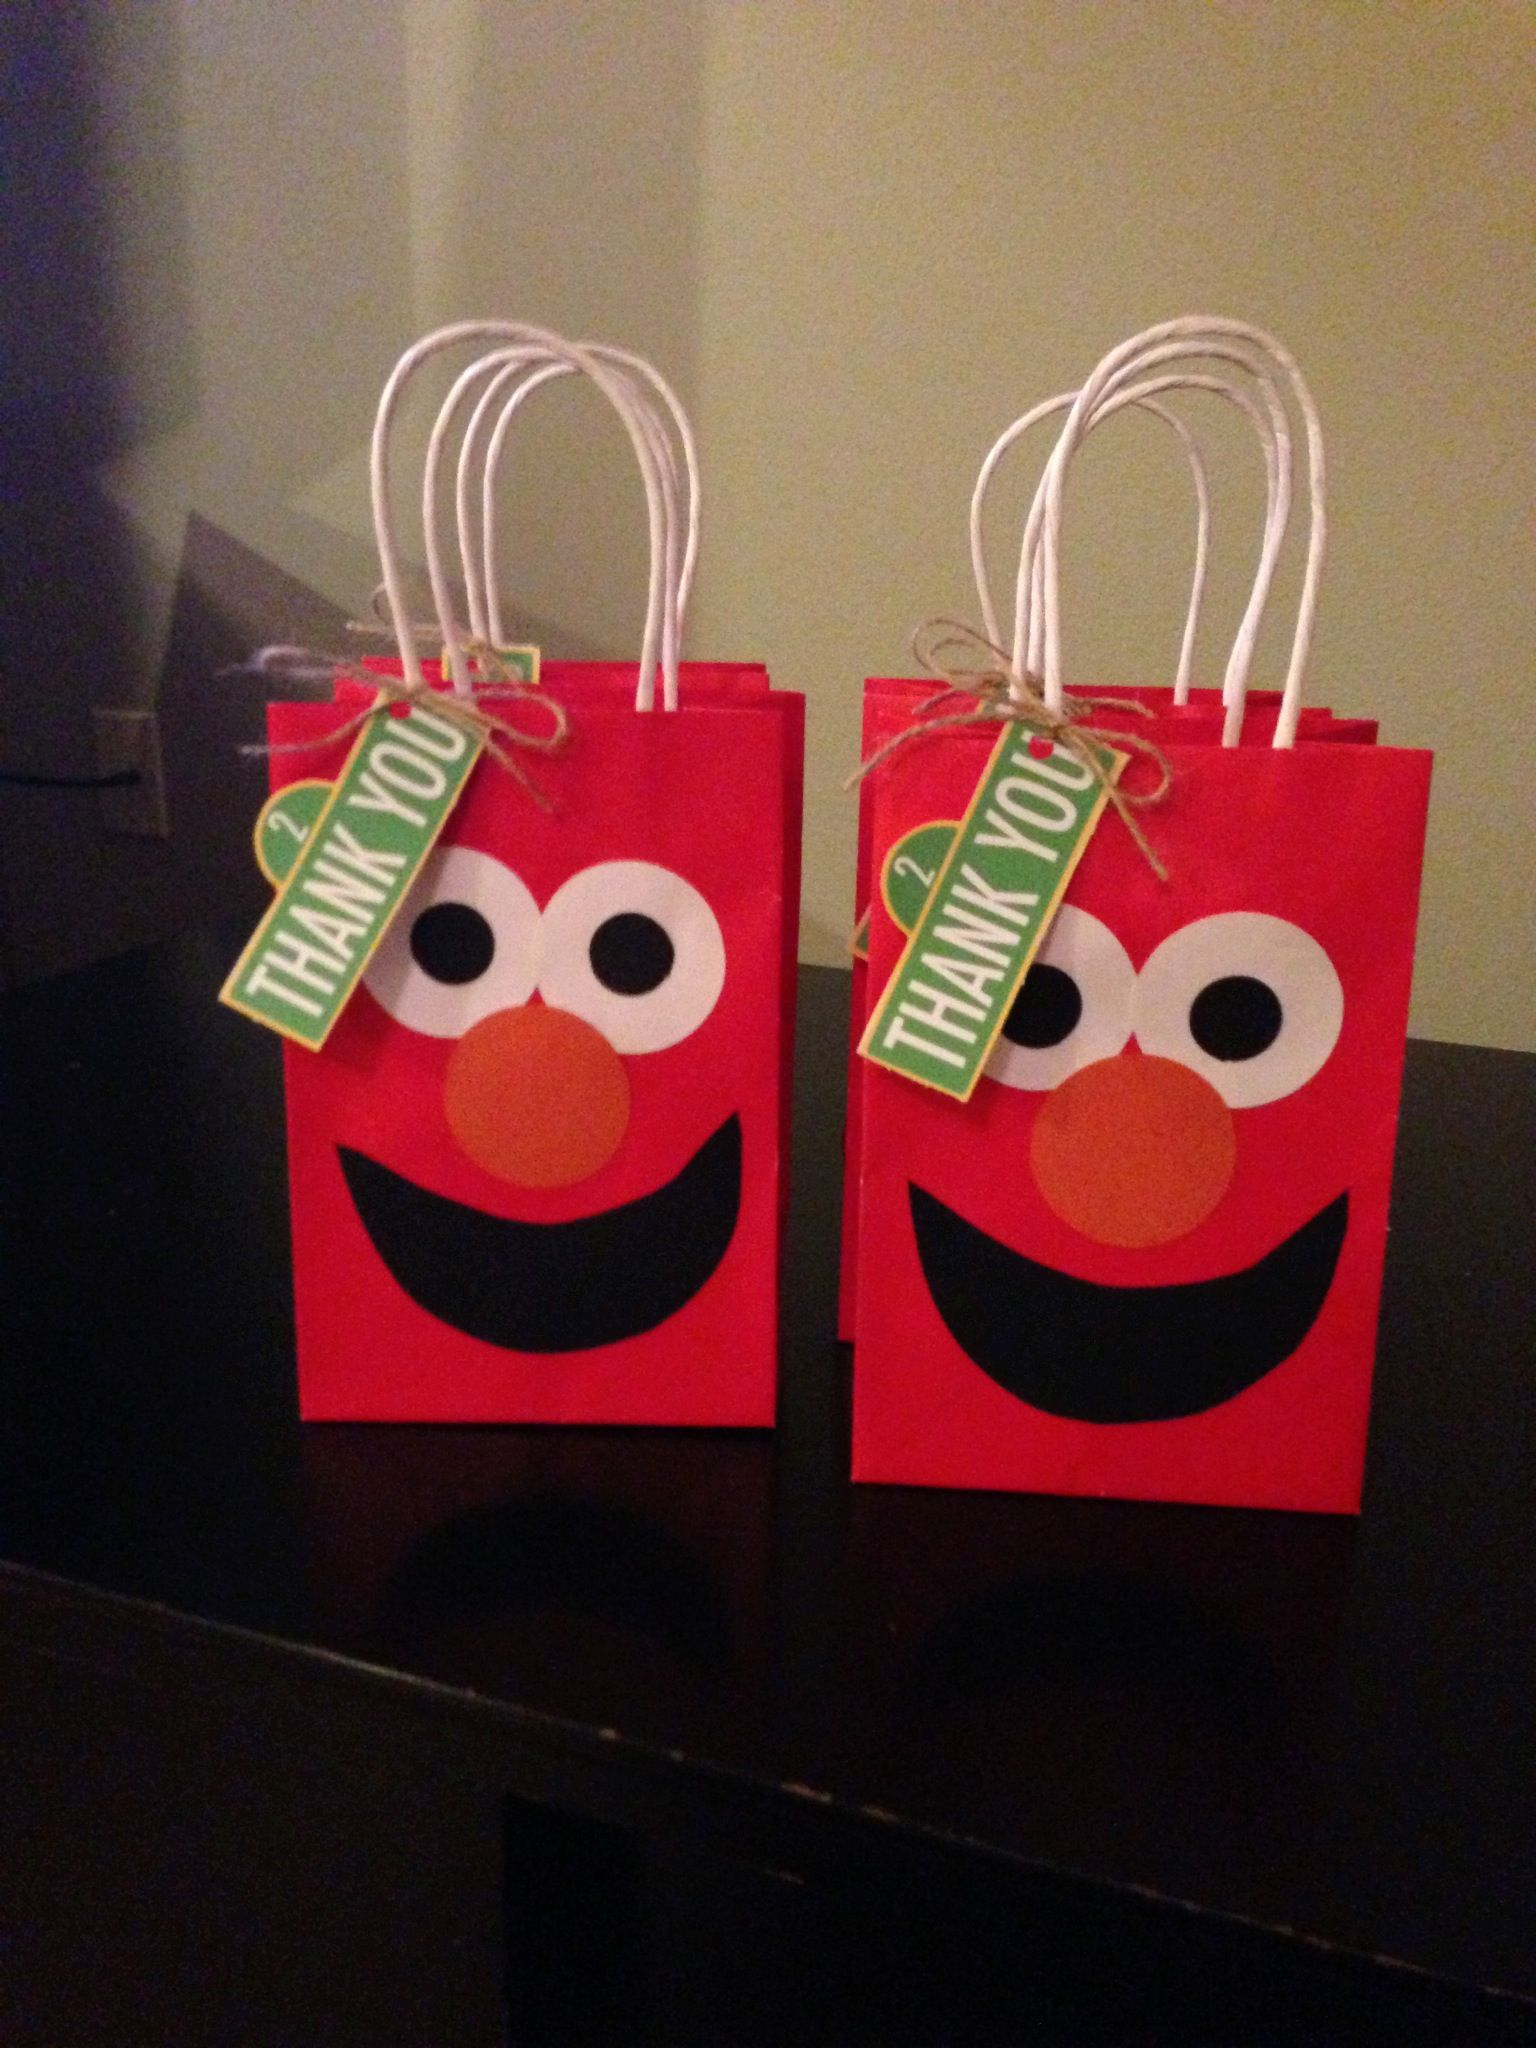 Theretroinc on etsy childrens parties pinterest elmo party elmo party favor bags for an elmo party i wonder if there would be a way to make a panda face on a white bag solutioingenieria Image collections